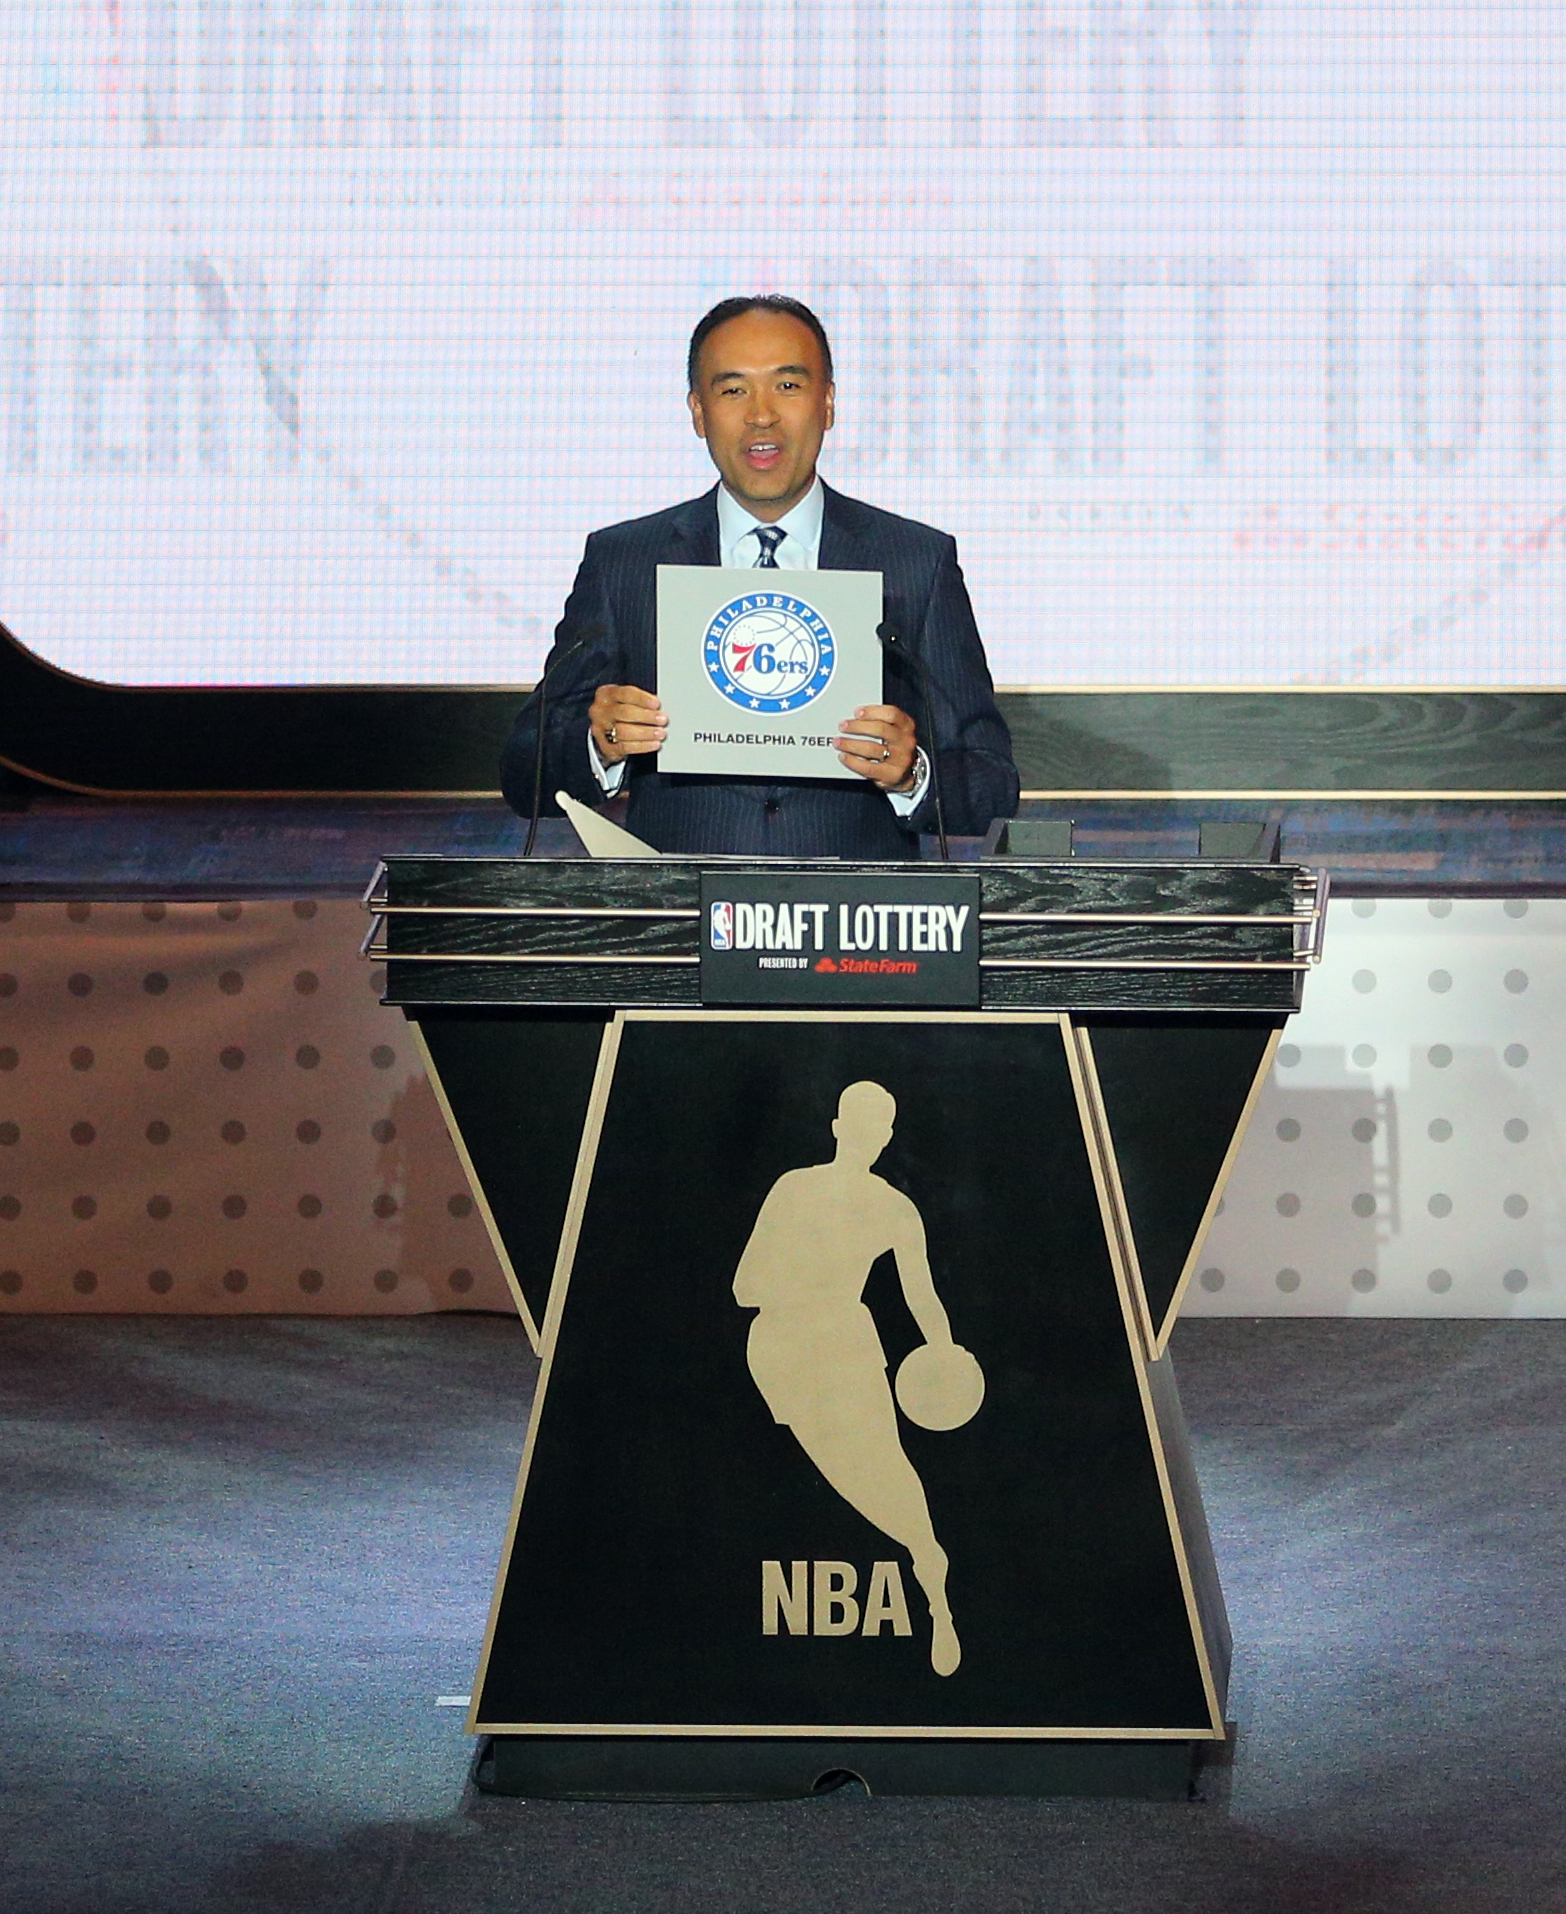 Rockets Vs Warriors Time Central: 2017 NBA Draft Lottery: Odds, How To Watch And What To Watch